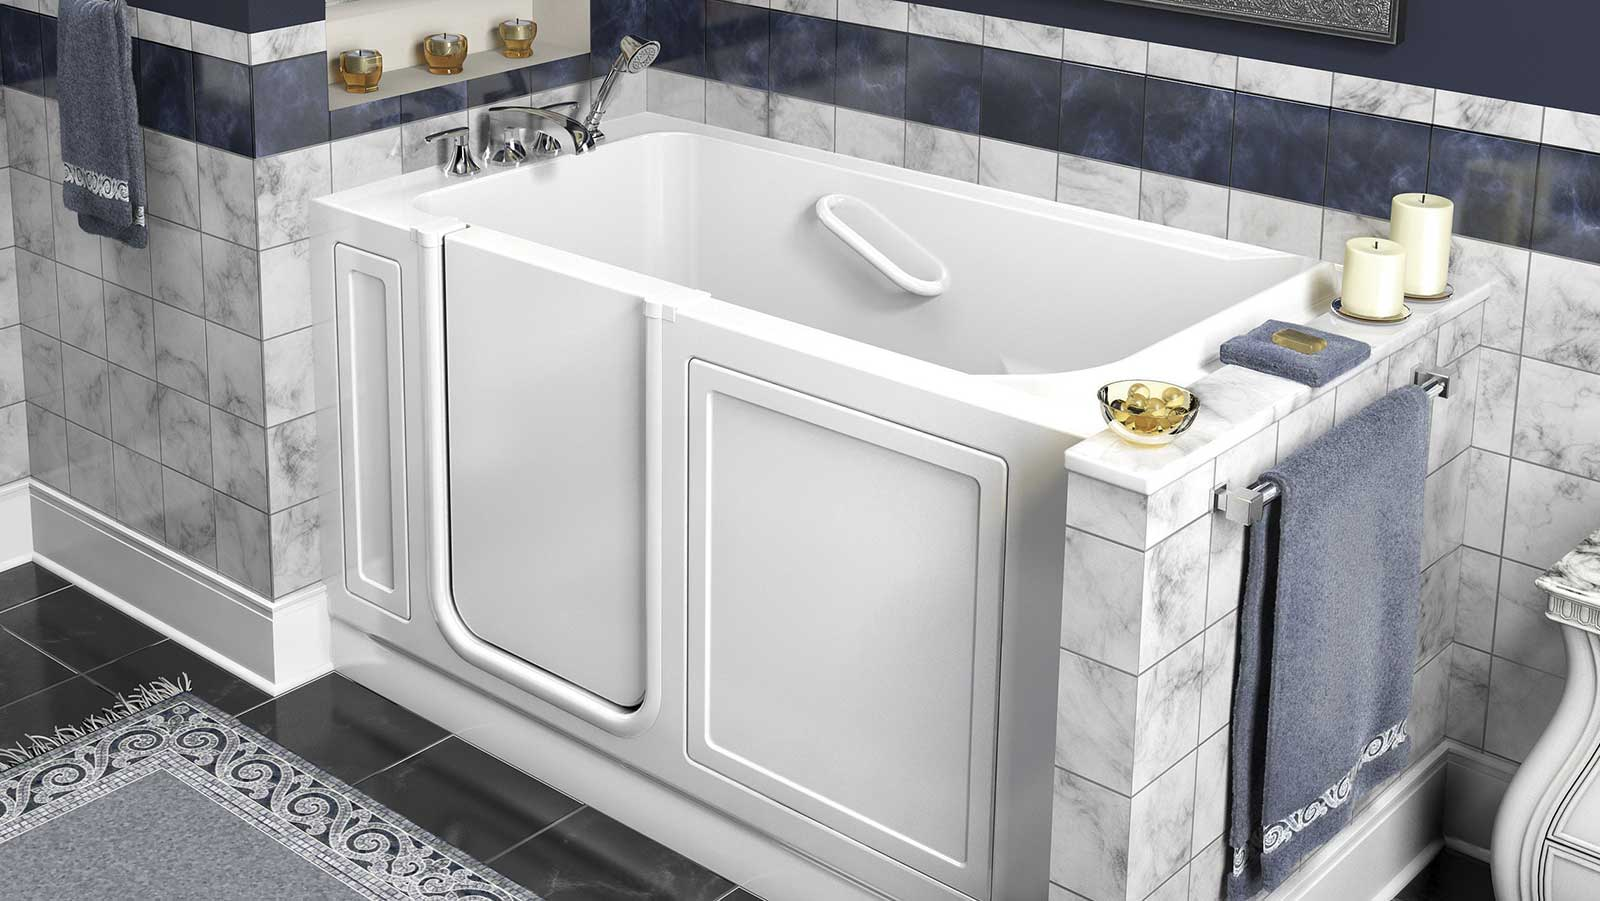 Types of Bathtubs - Which Bathtub Do You Need?